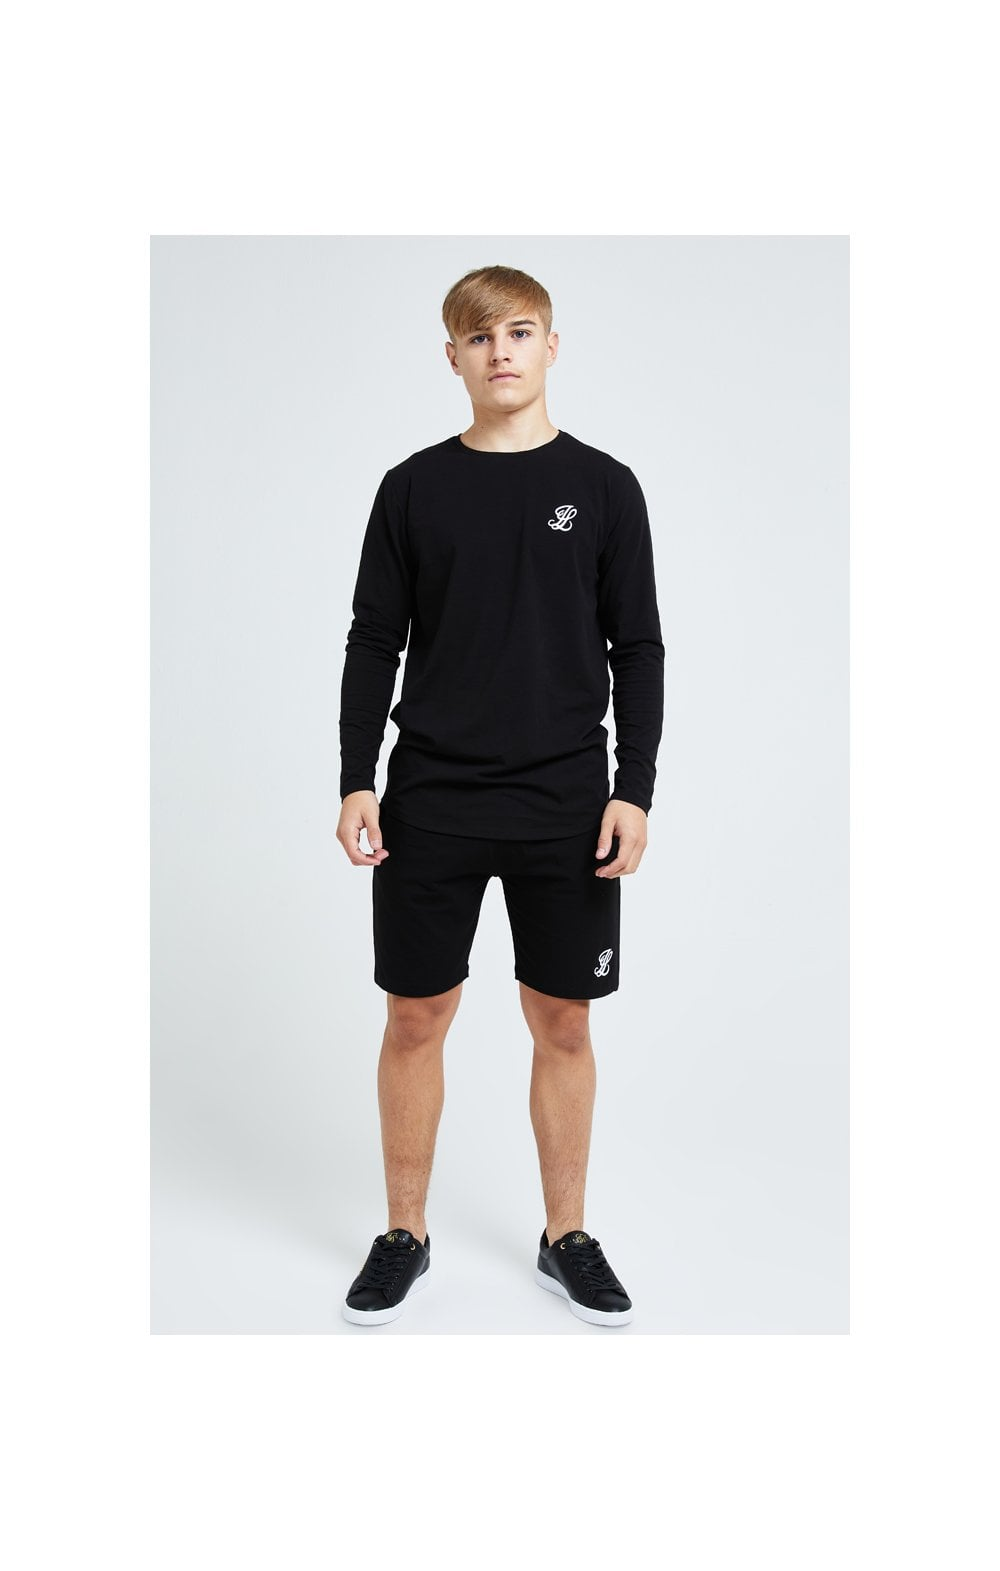 Illusive London L/S Core Tee - Black (4)